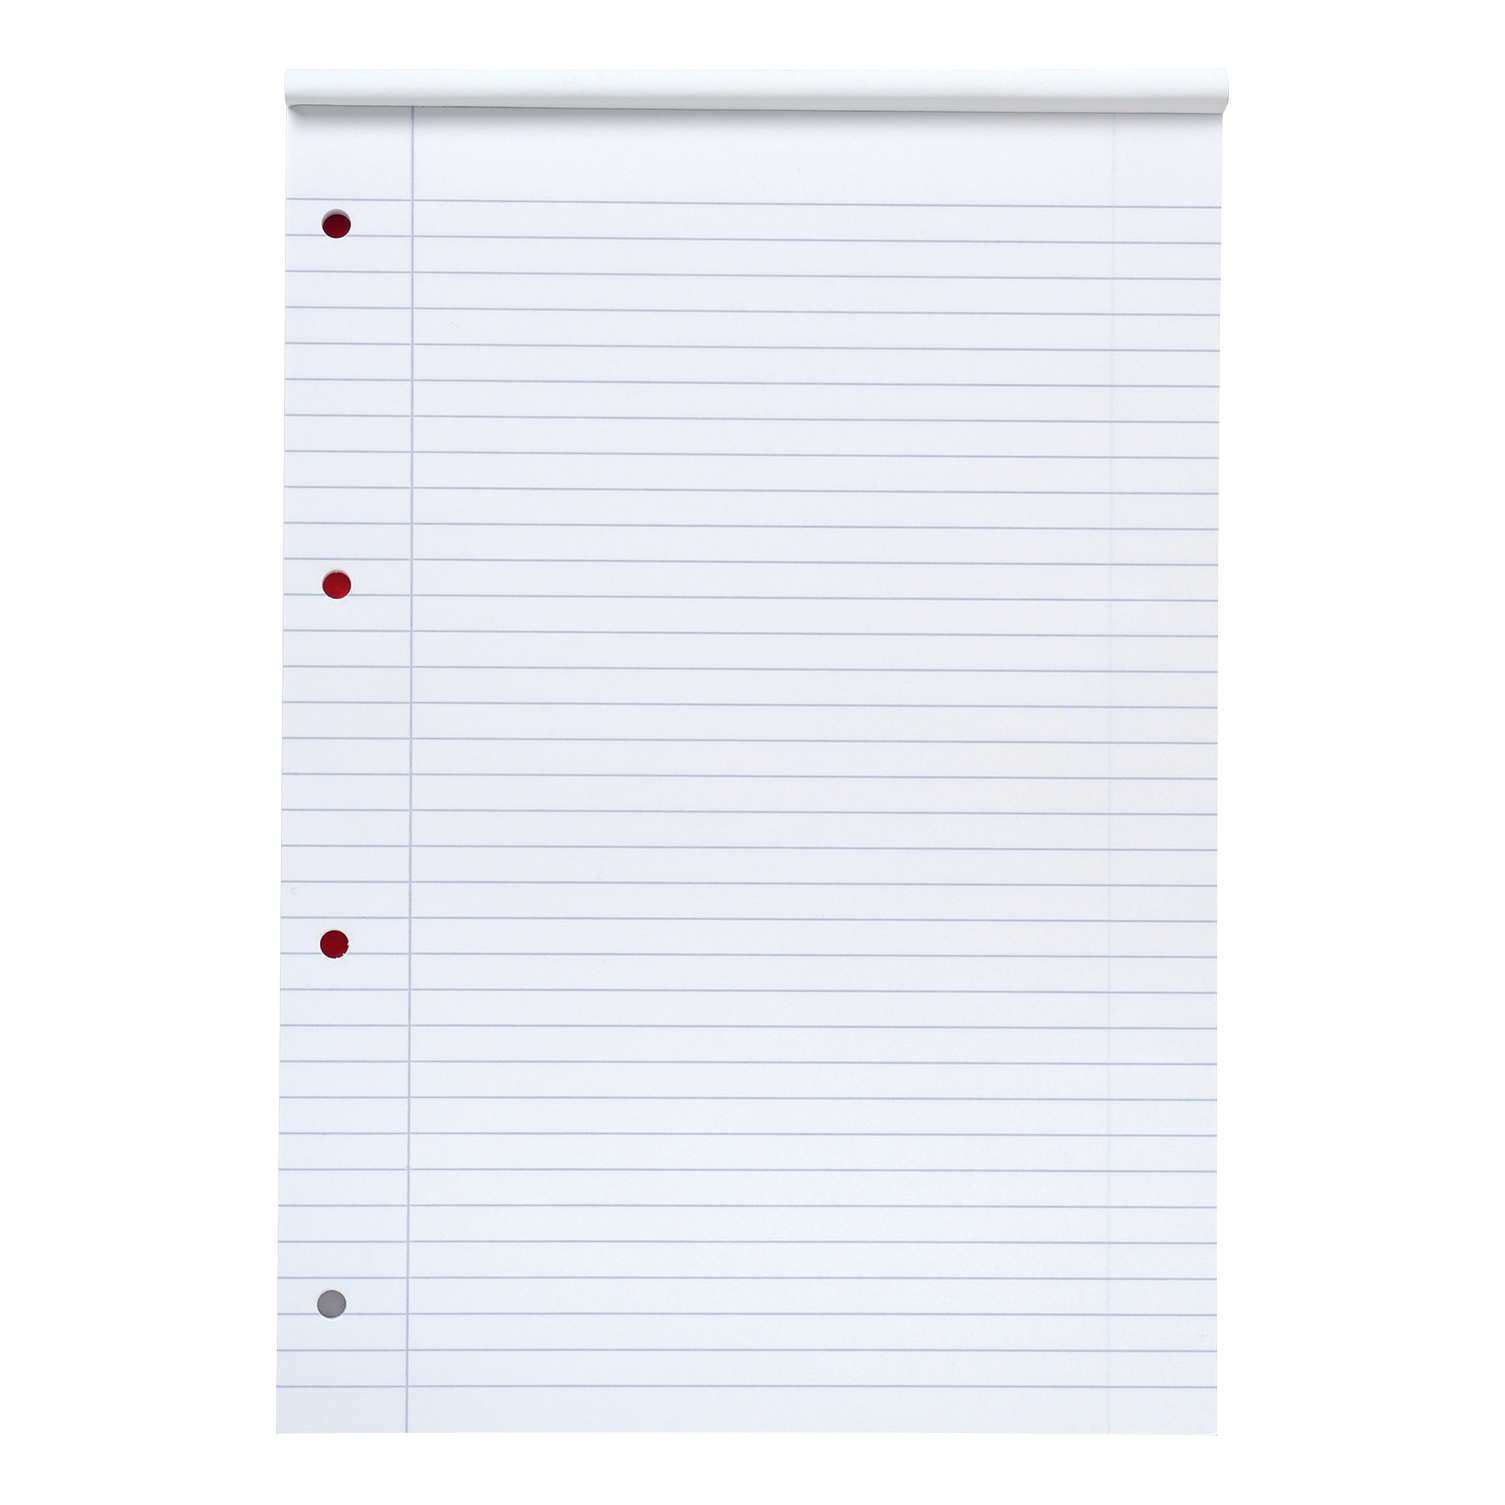 5 Star Office FSC Refill Pad Headbound 70gsm Ruled Margin Punched 4 Holes 160pp A4 Red Pack 10